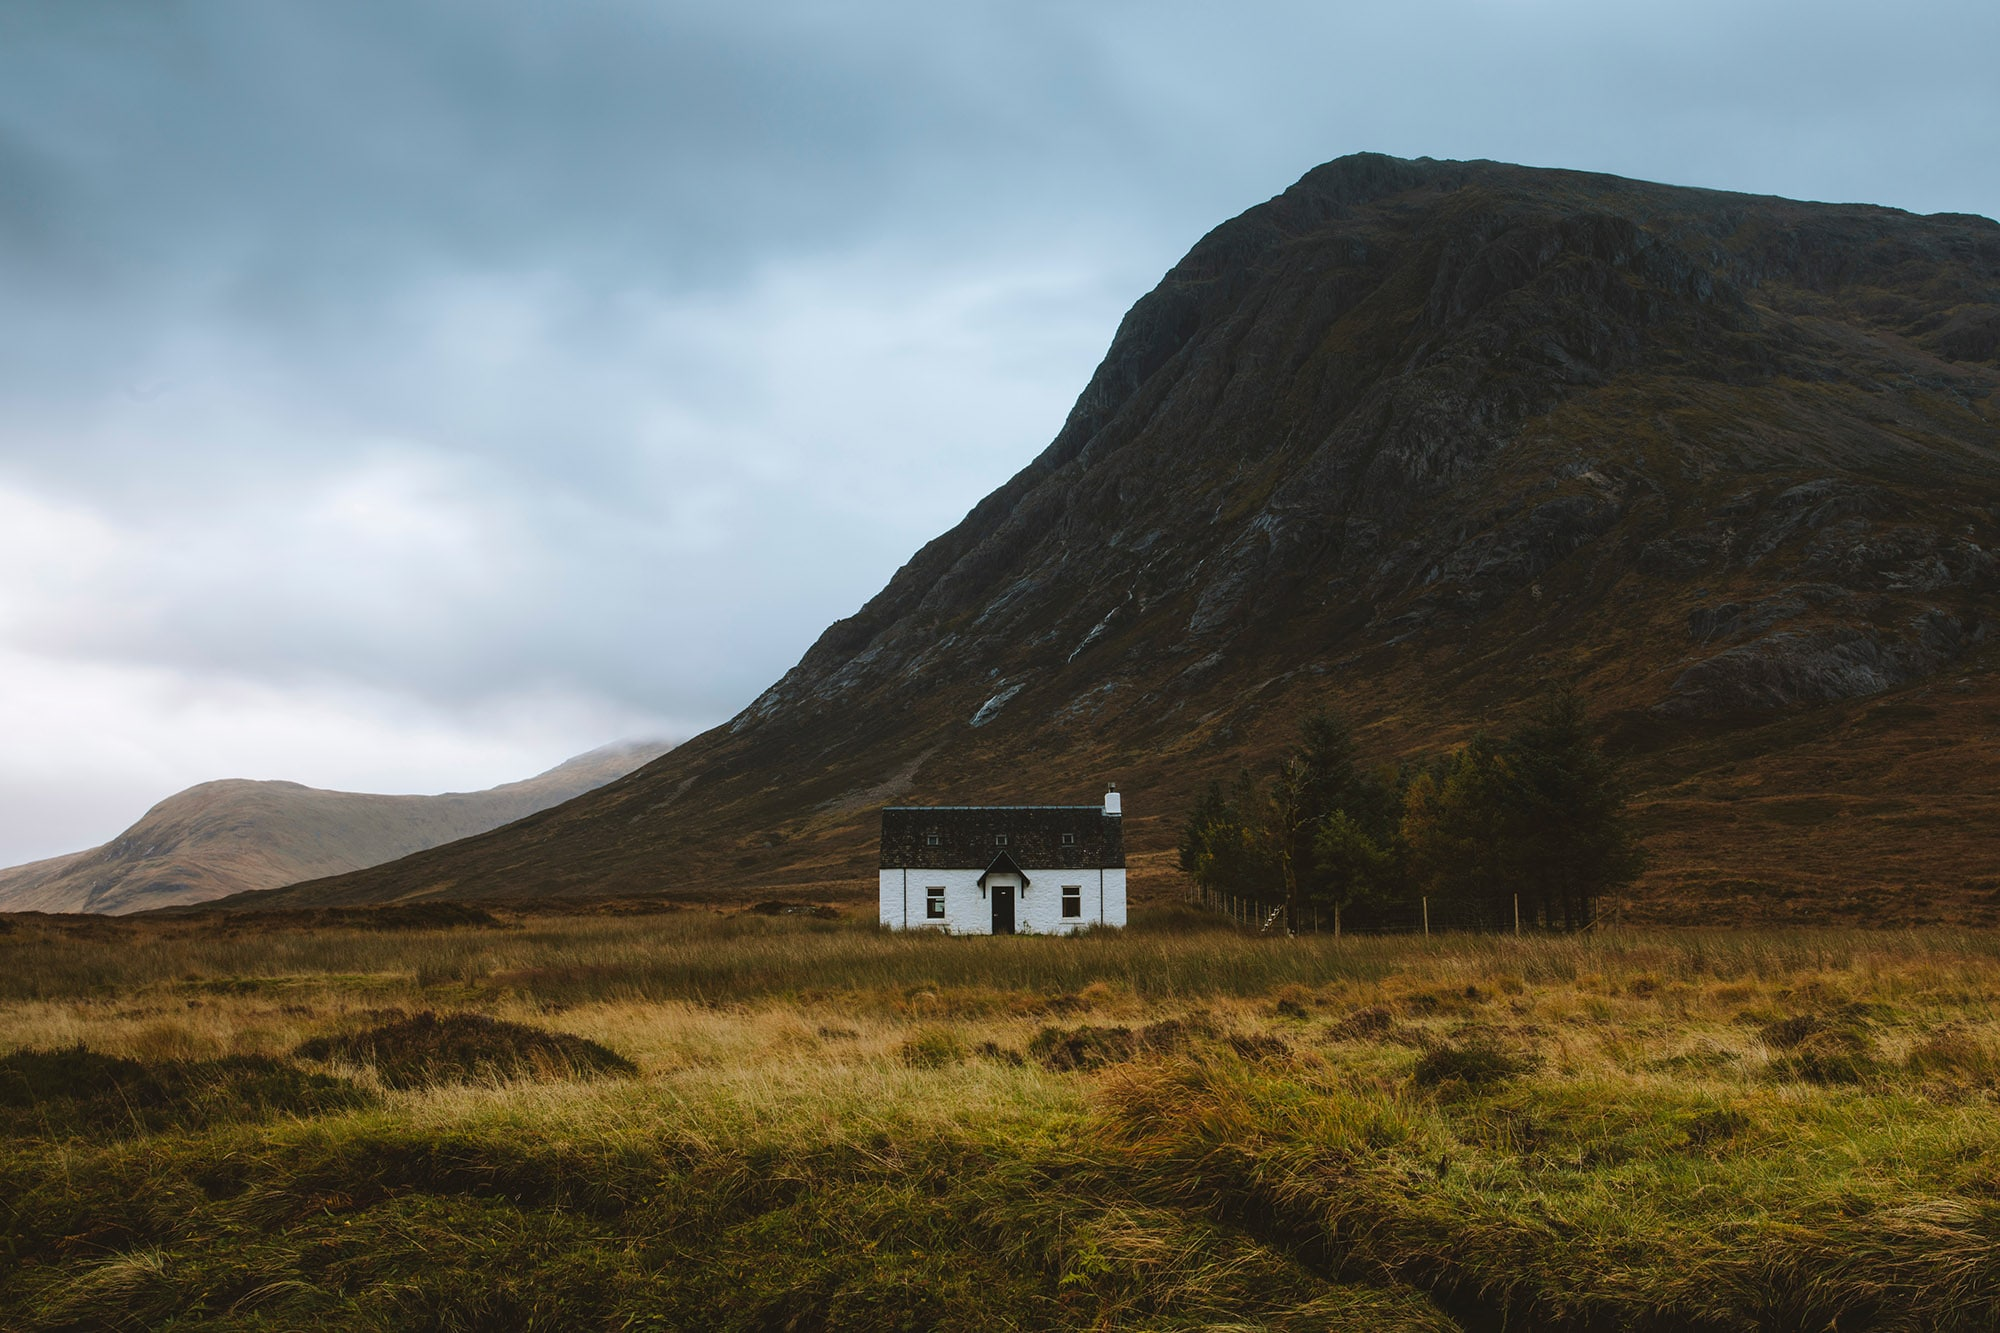 Blackrock Cottage in Glencoe, visit Blackrock and the Glencoe mountains on our Loch Ness Monster tour of Scotland